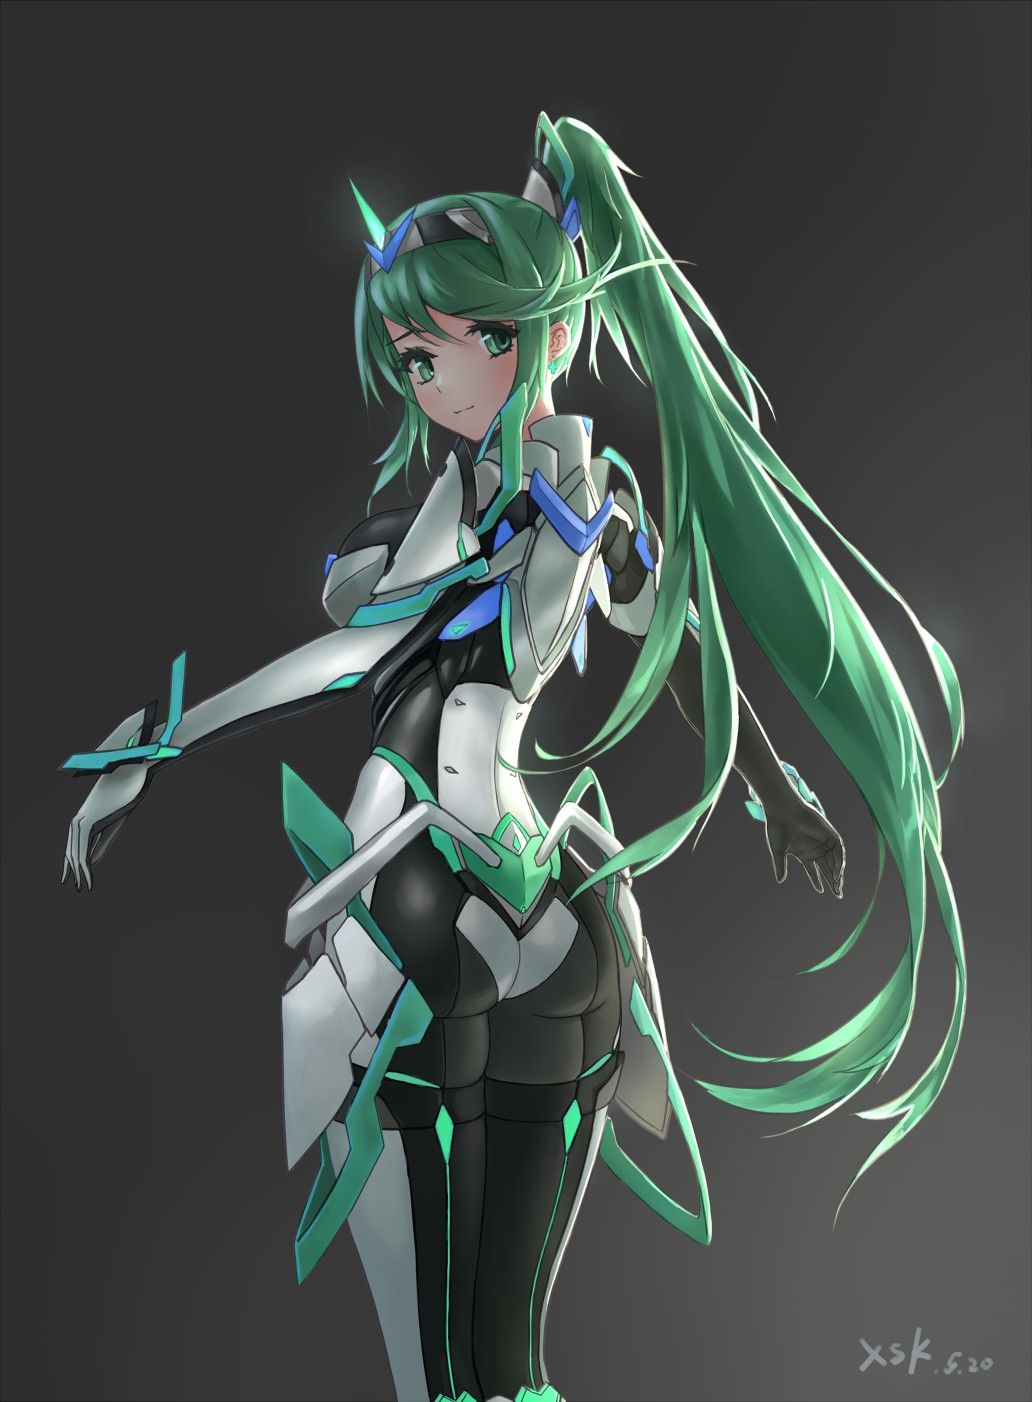 Pin By Leoriks On D D Stuff Anime Characters Character Art Anime